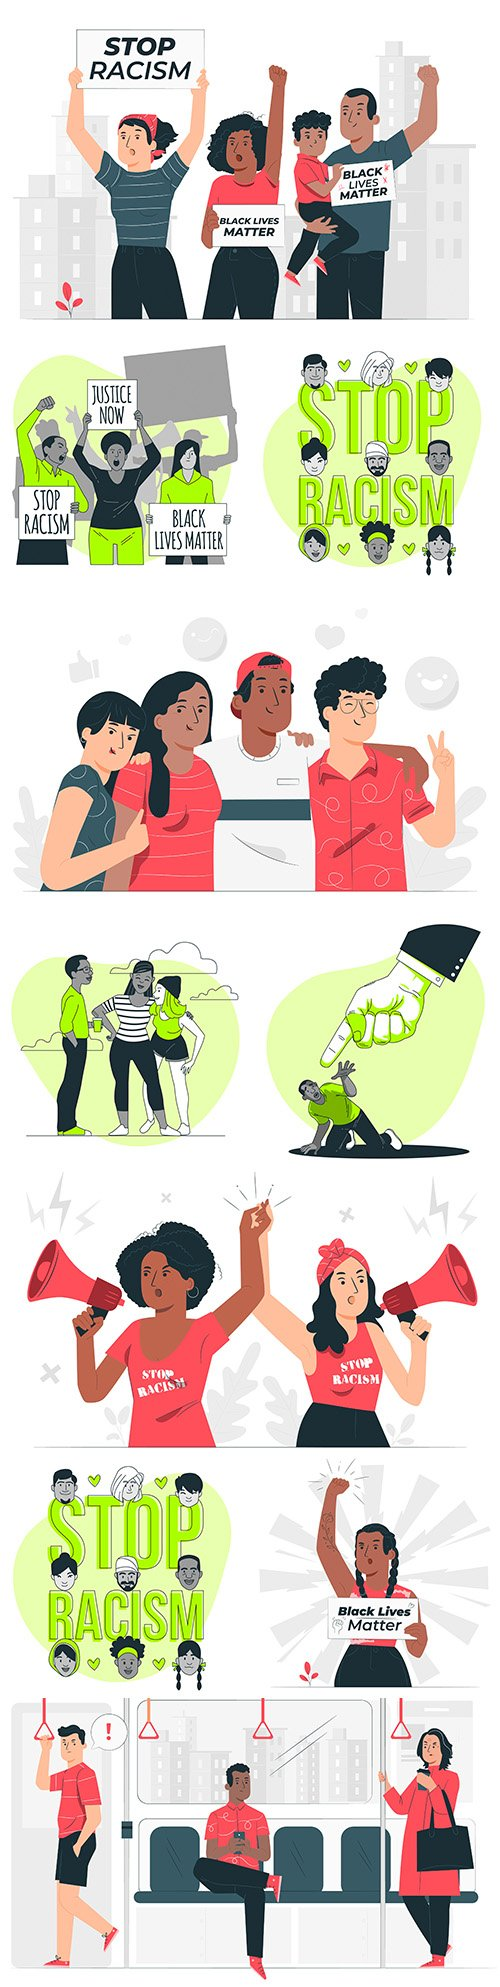 People protest against the racism concept of illustration